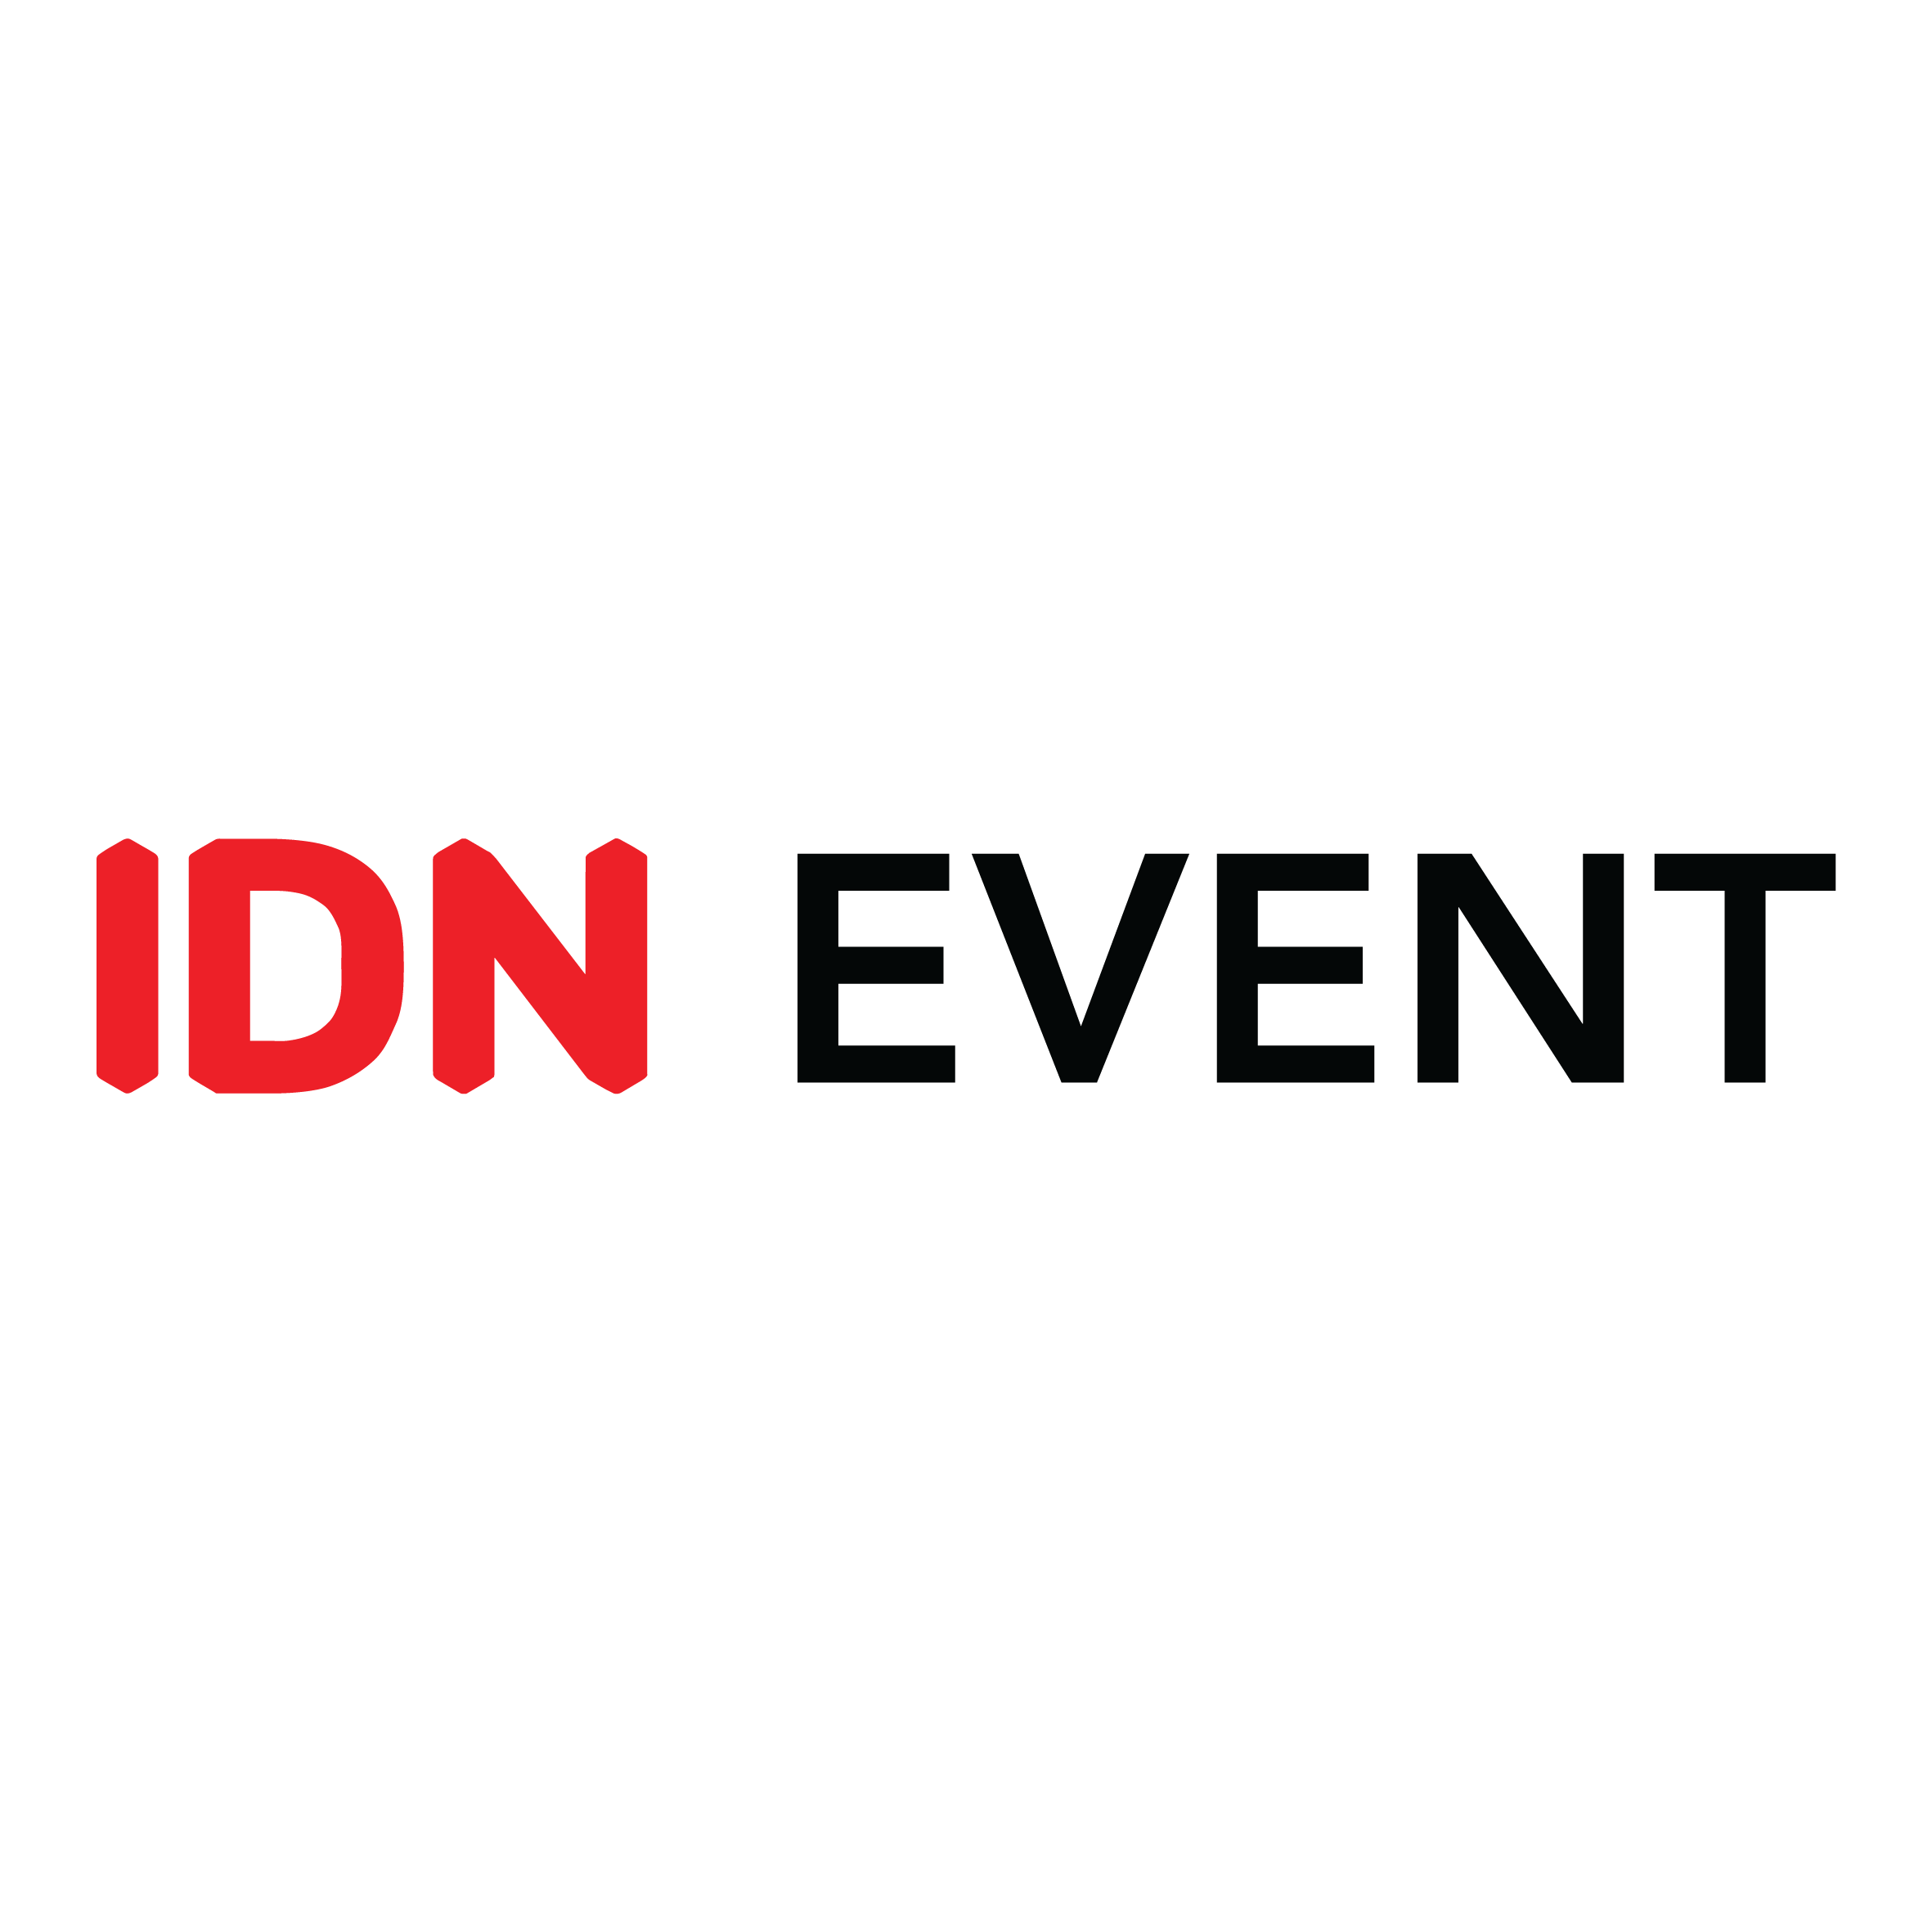 Logo IDN Event.png